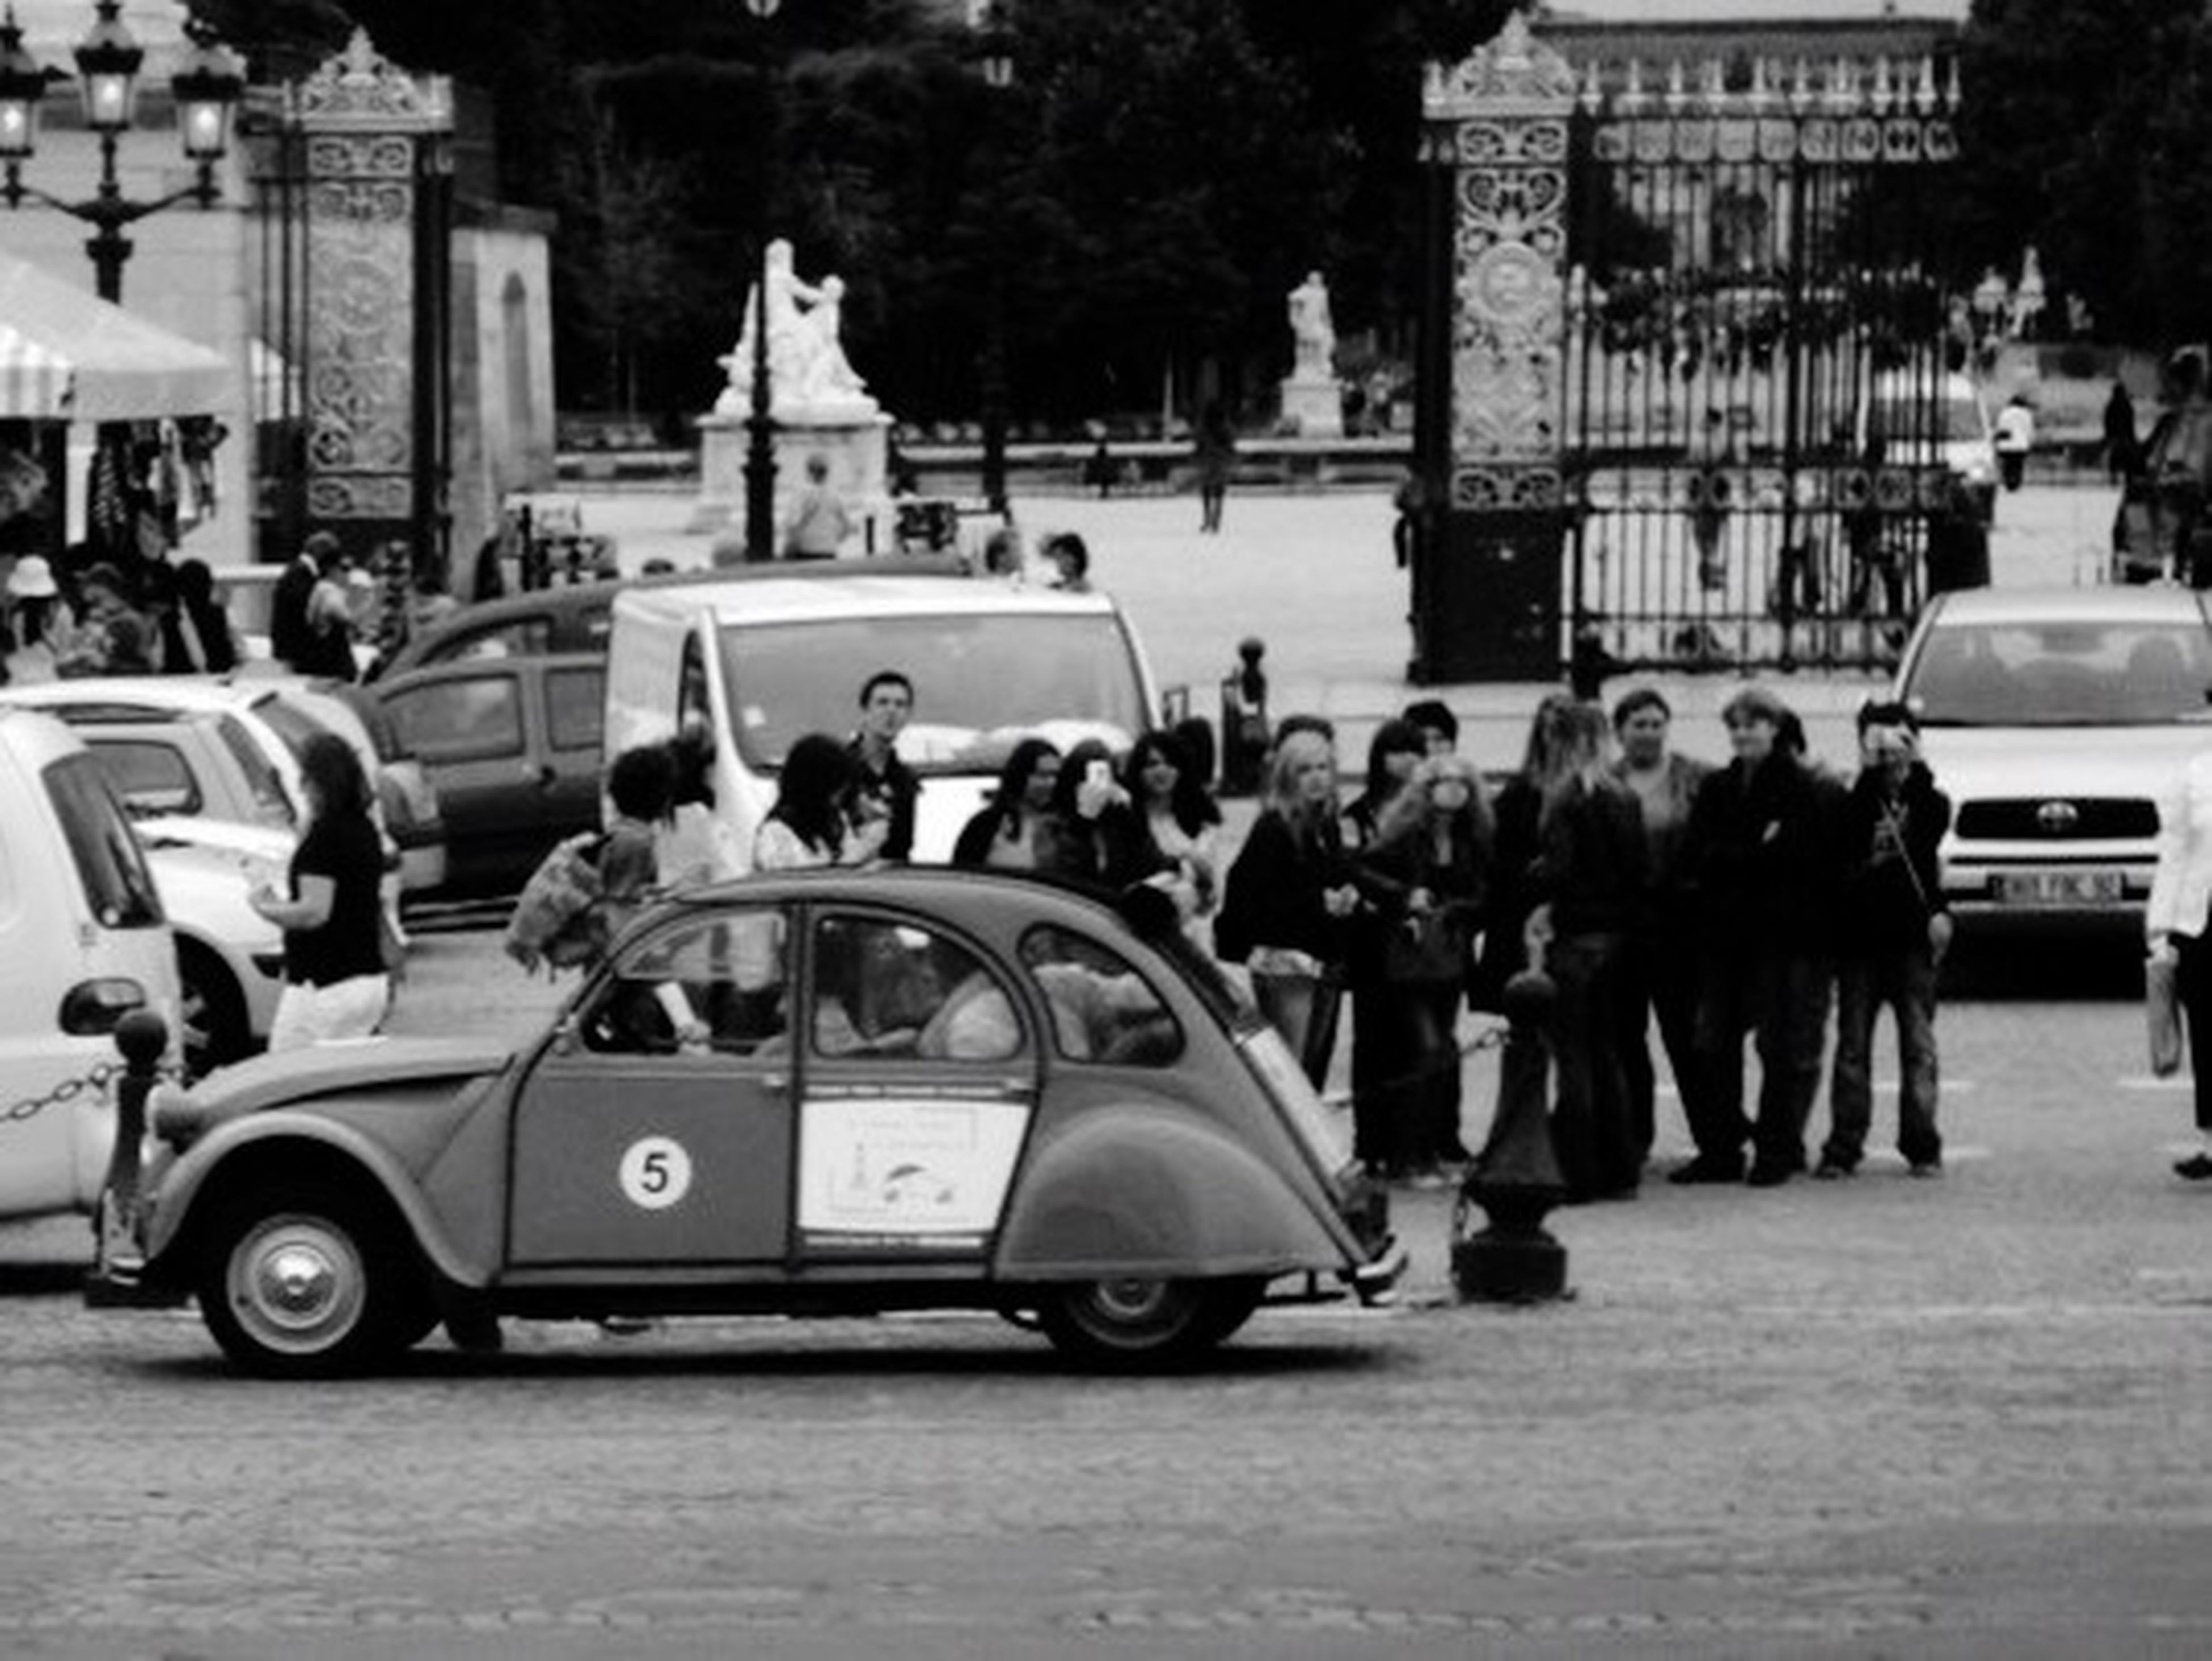 street, car, city, men, outdoors, architecture, day, large group of people, people, adult, police car